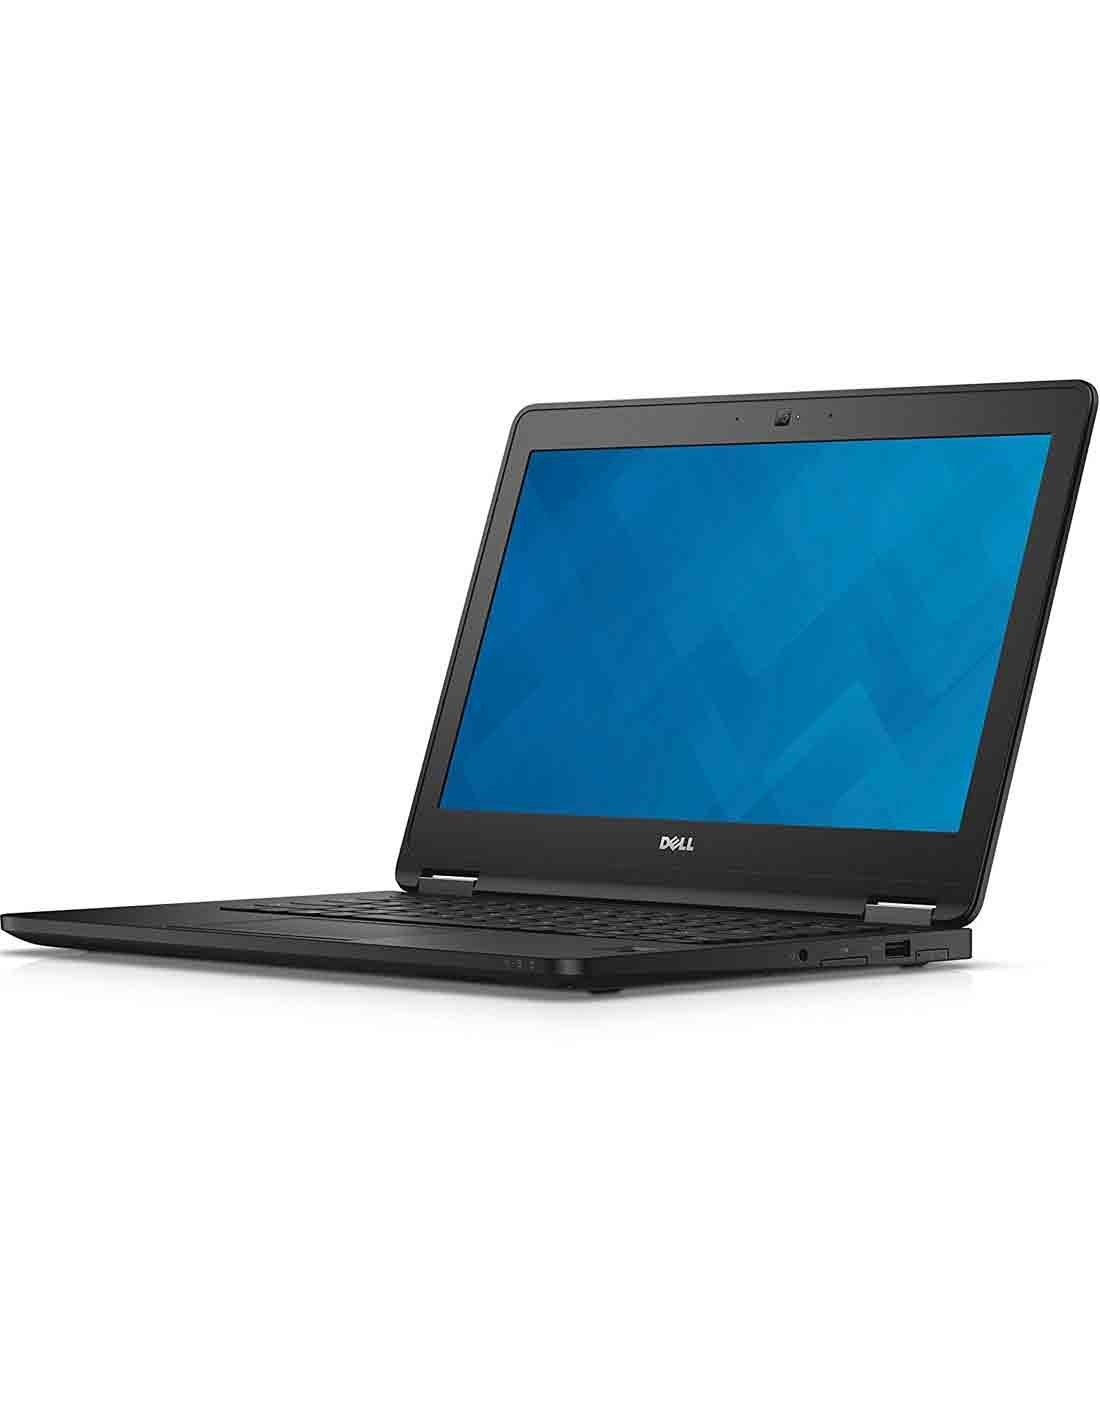 Buy Online Dell Latitude E7270 Business Laptop at a Cheap Price and Free Delivery in Dubai UAE